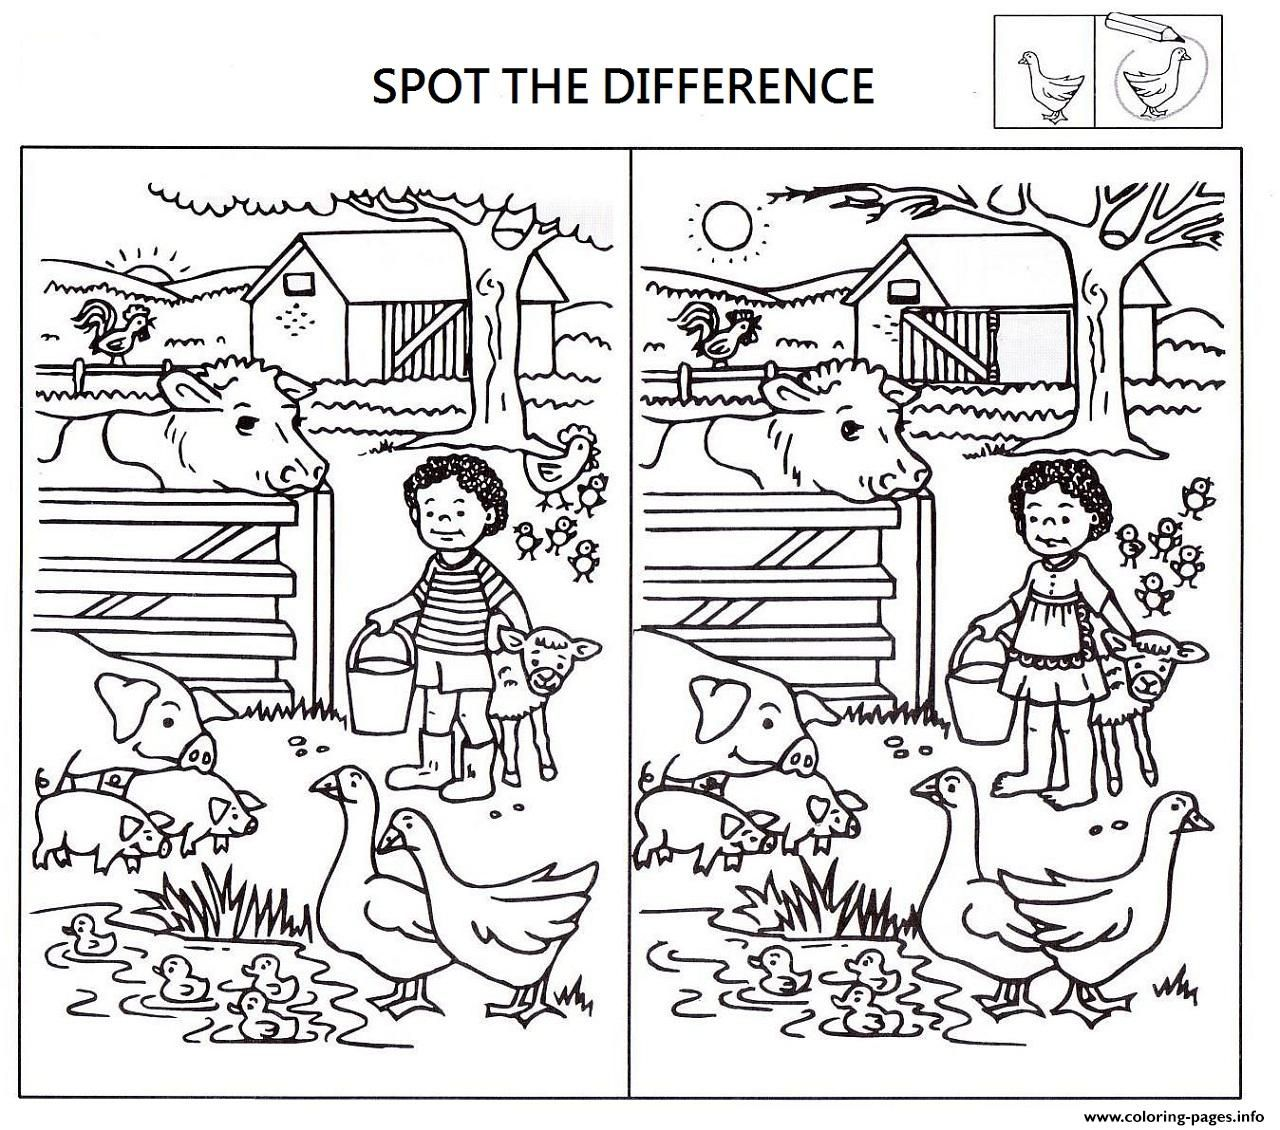 Spot The Difference Worksheets For Kids Coloring Pages